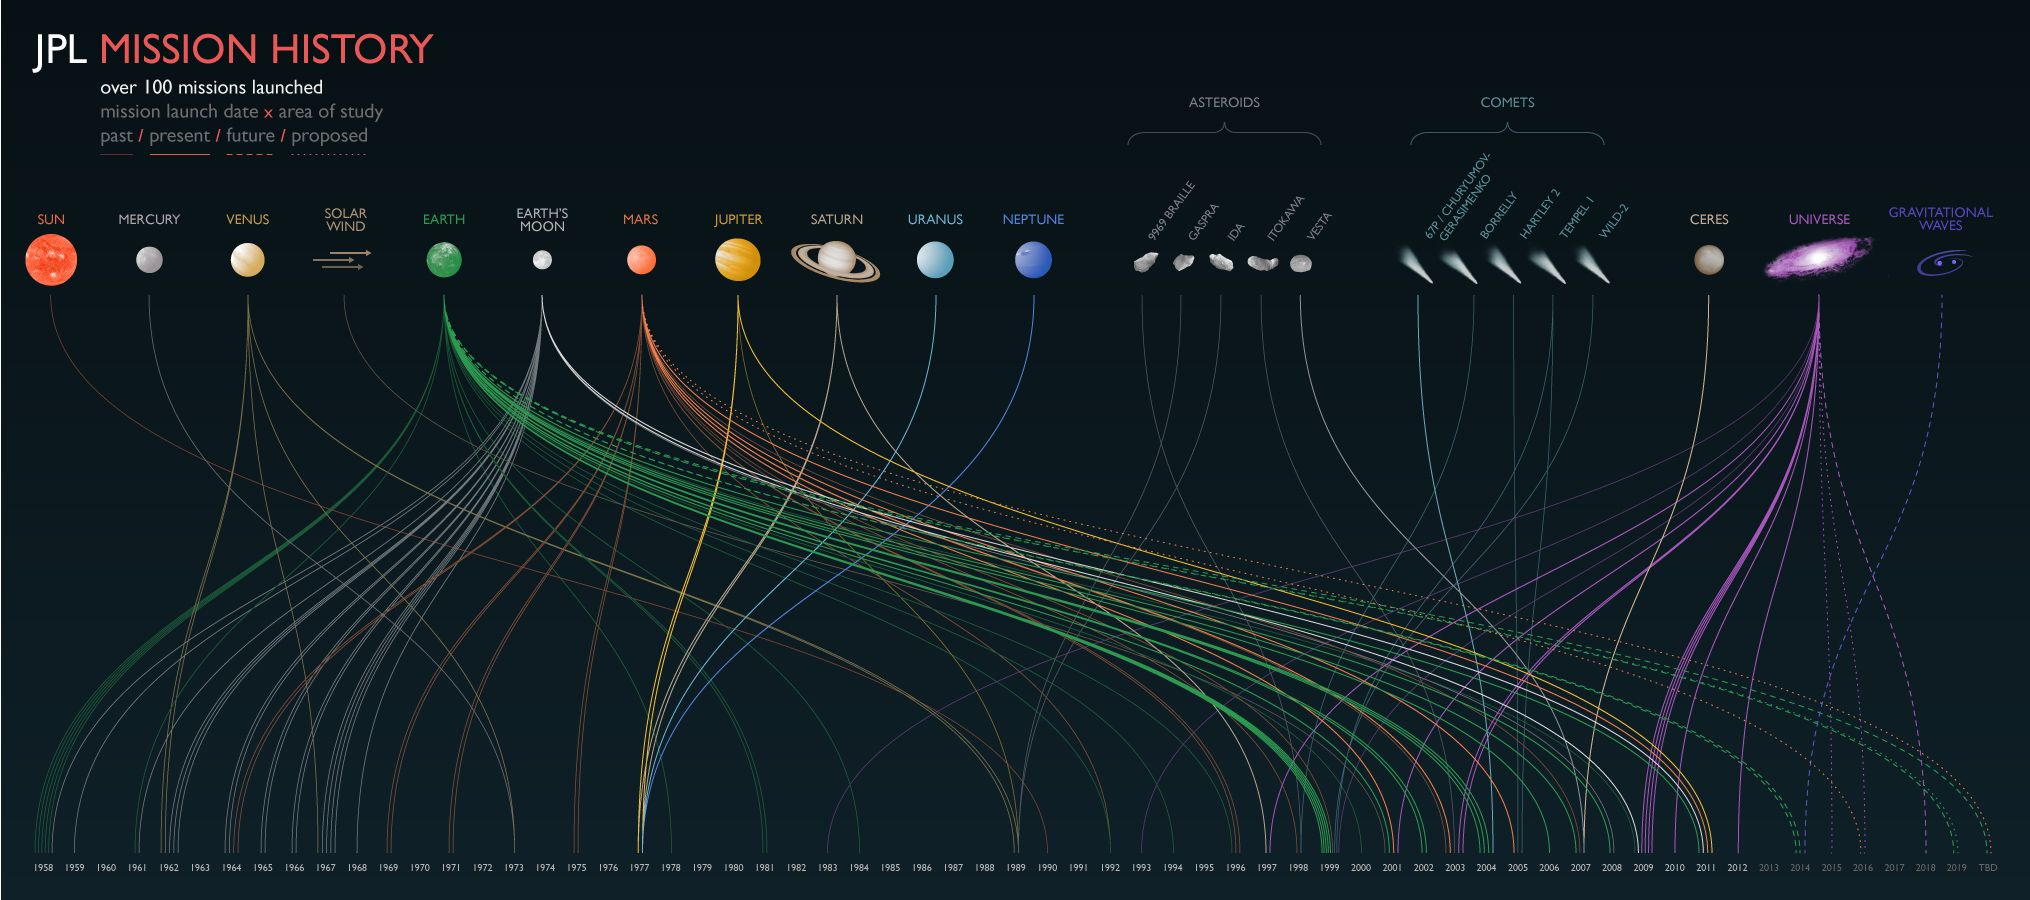 a history of space exploration Space fans looking for an overview of humanity's interest and voyages into the final frontier have a new resource: the smithsonian history of space exploration: from the ancient world to the.